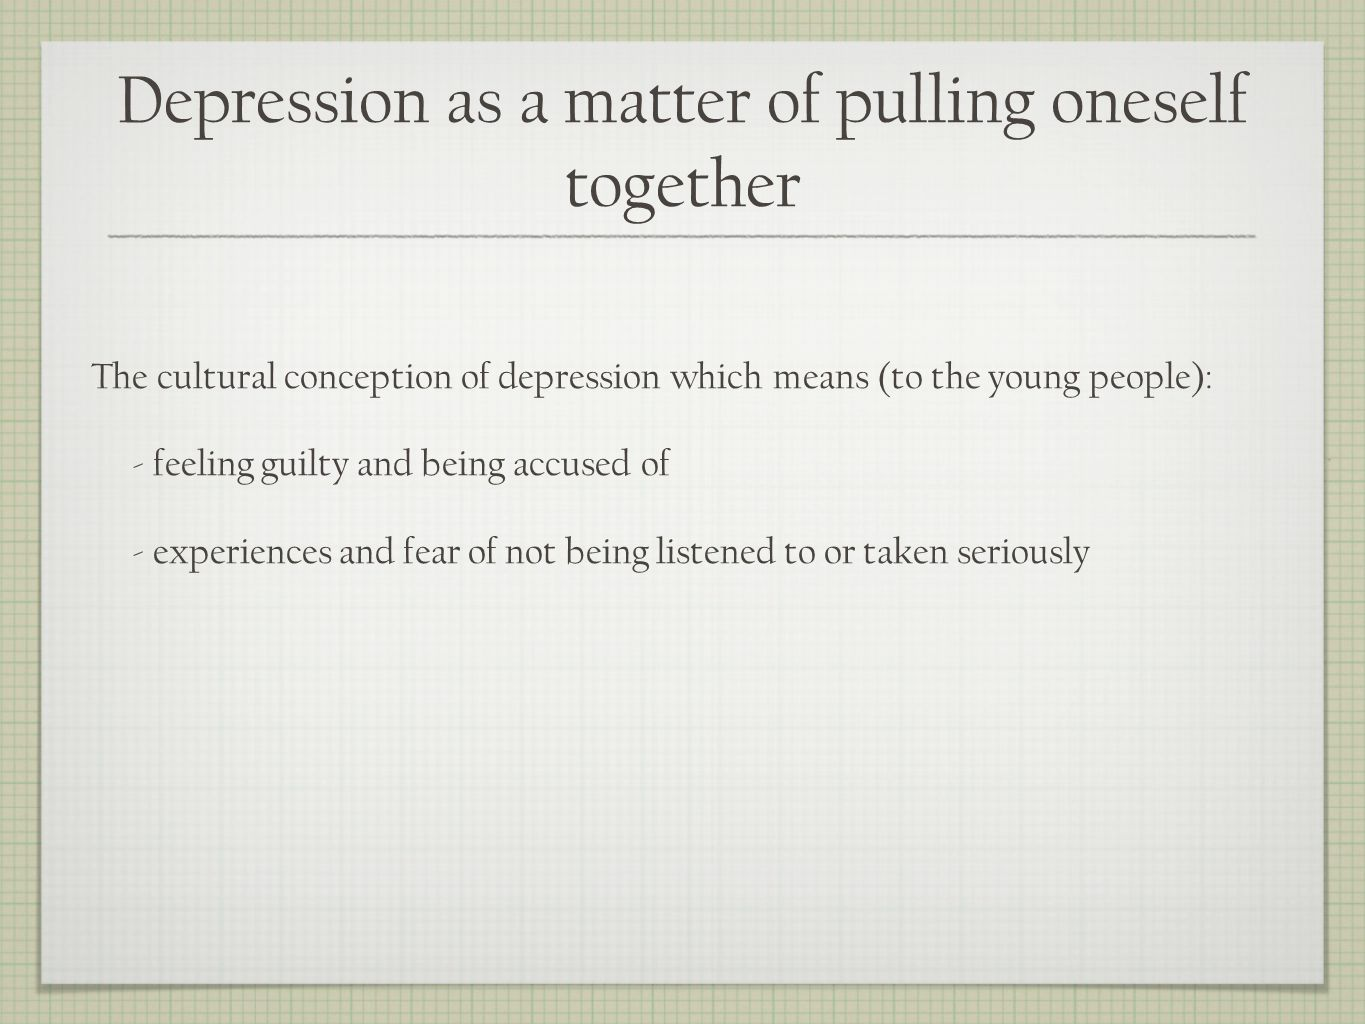 Depression as a matter of pulling oneself together The cultural conception of depression which means (to the young people): - feeling guilty and being